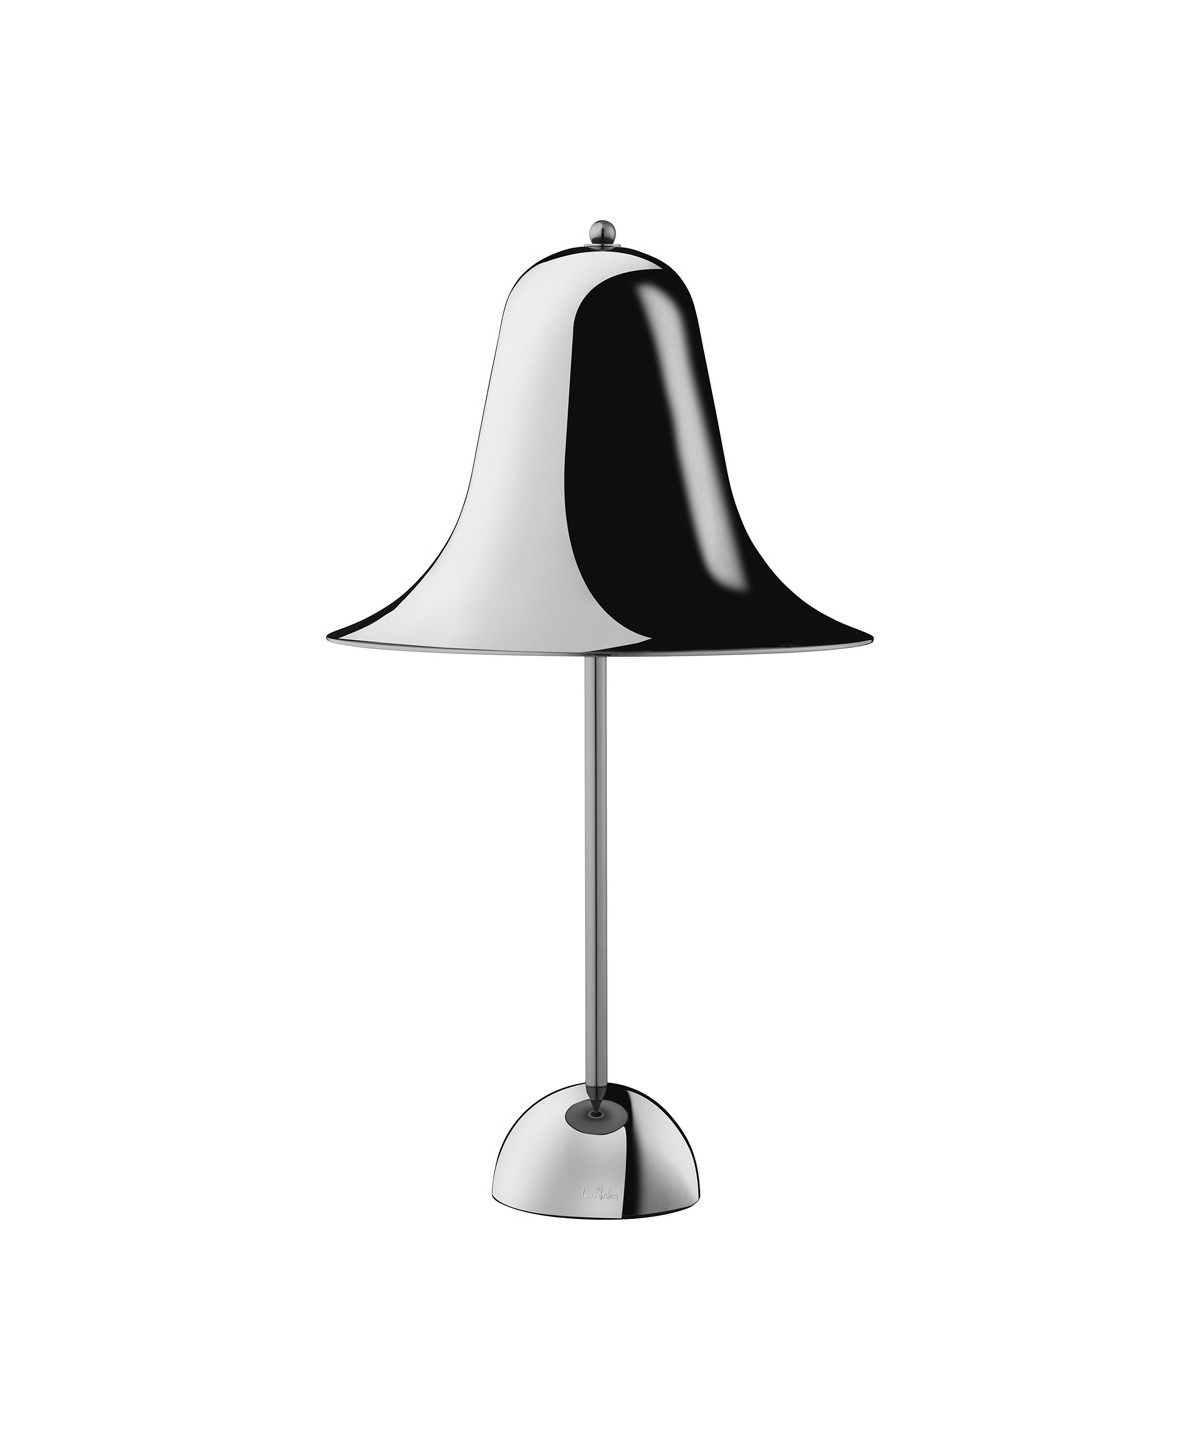 Image of   Pantop Bordlampe Sort Krom - Verpan